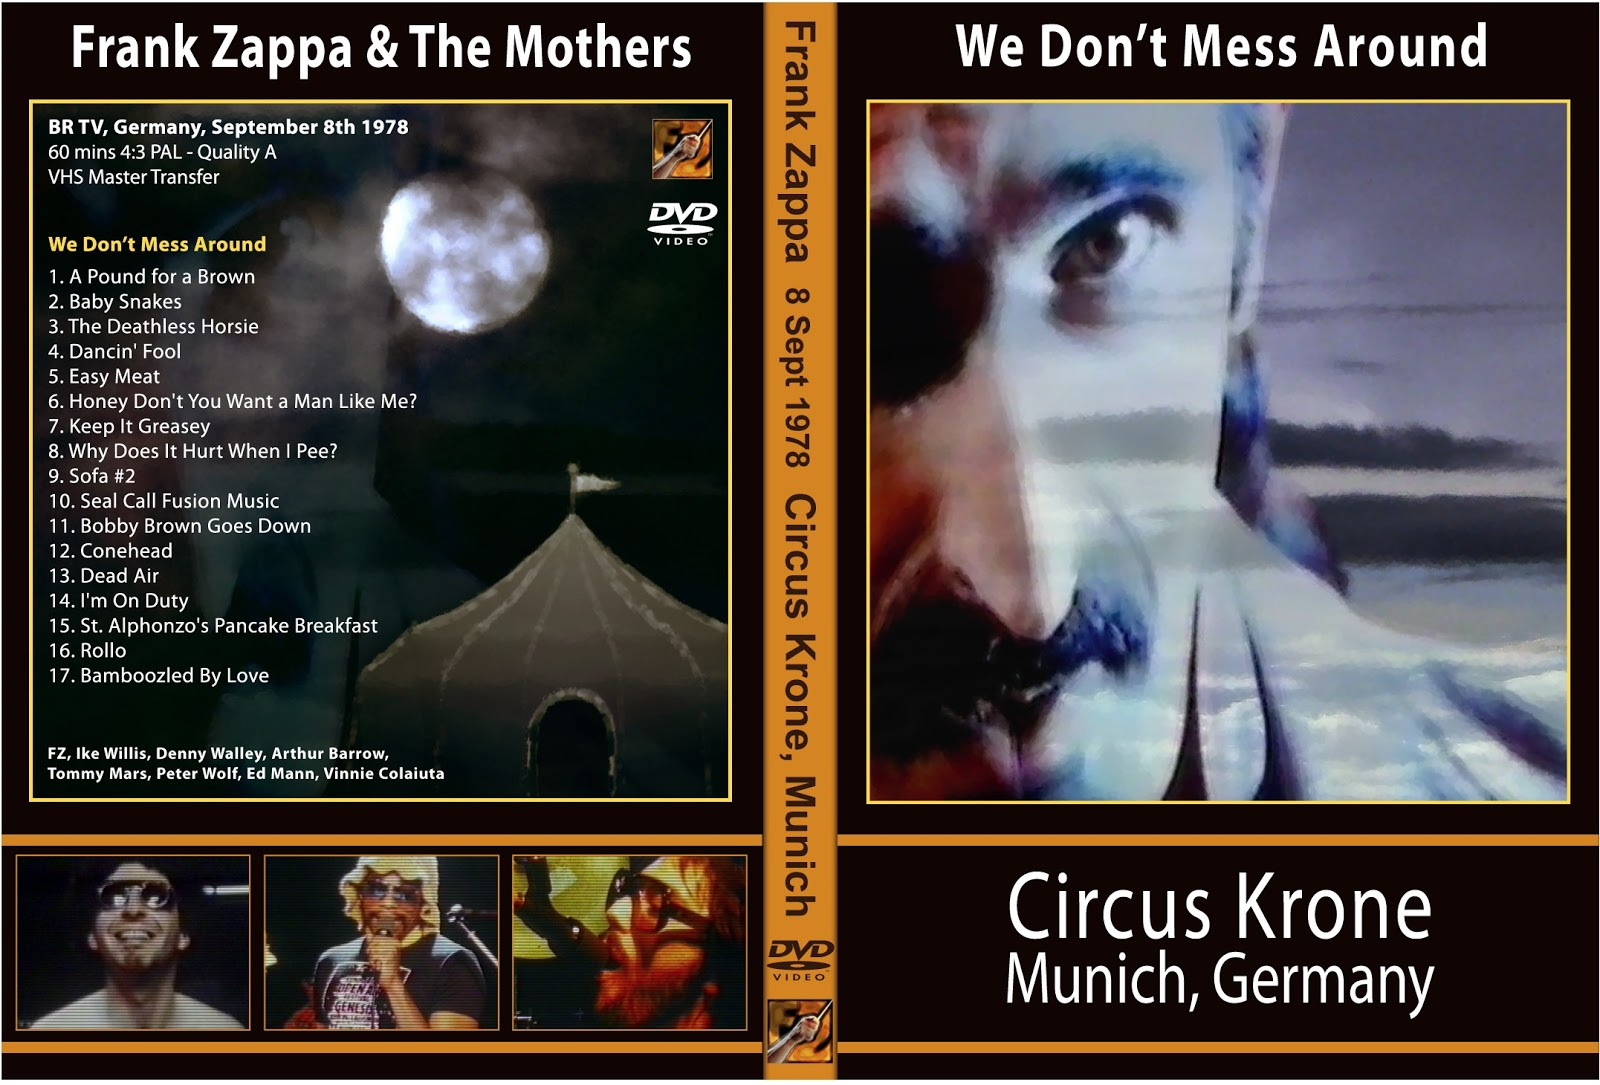 DVD Covert Frank Zappa We Dont Mess Around 1978 : cover from dvdconcertth.blogspot.com size 1600 x 1085 jpeg 284kB